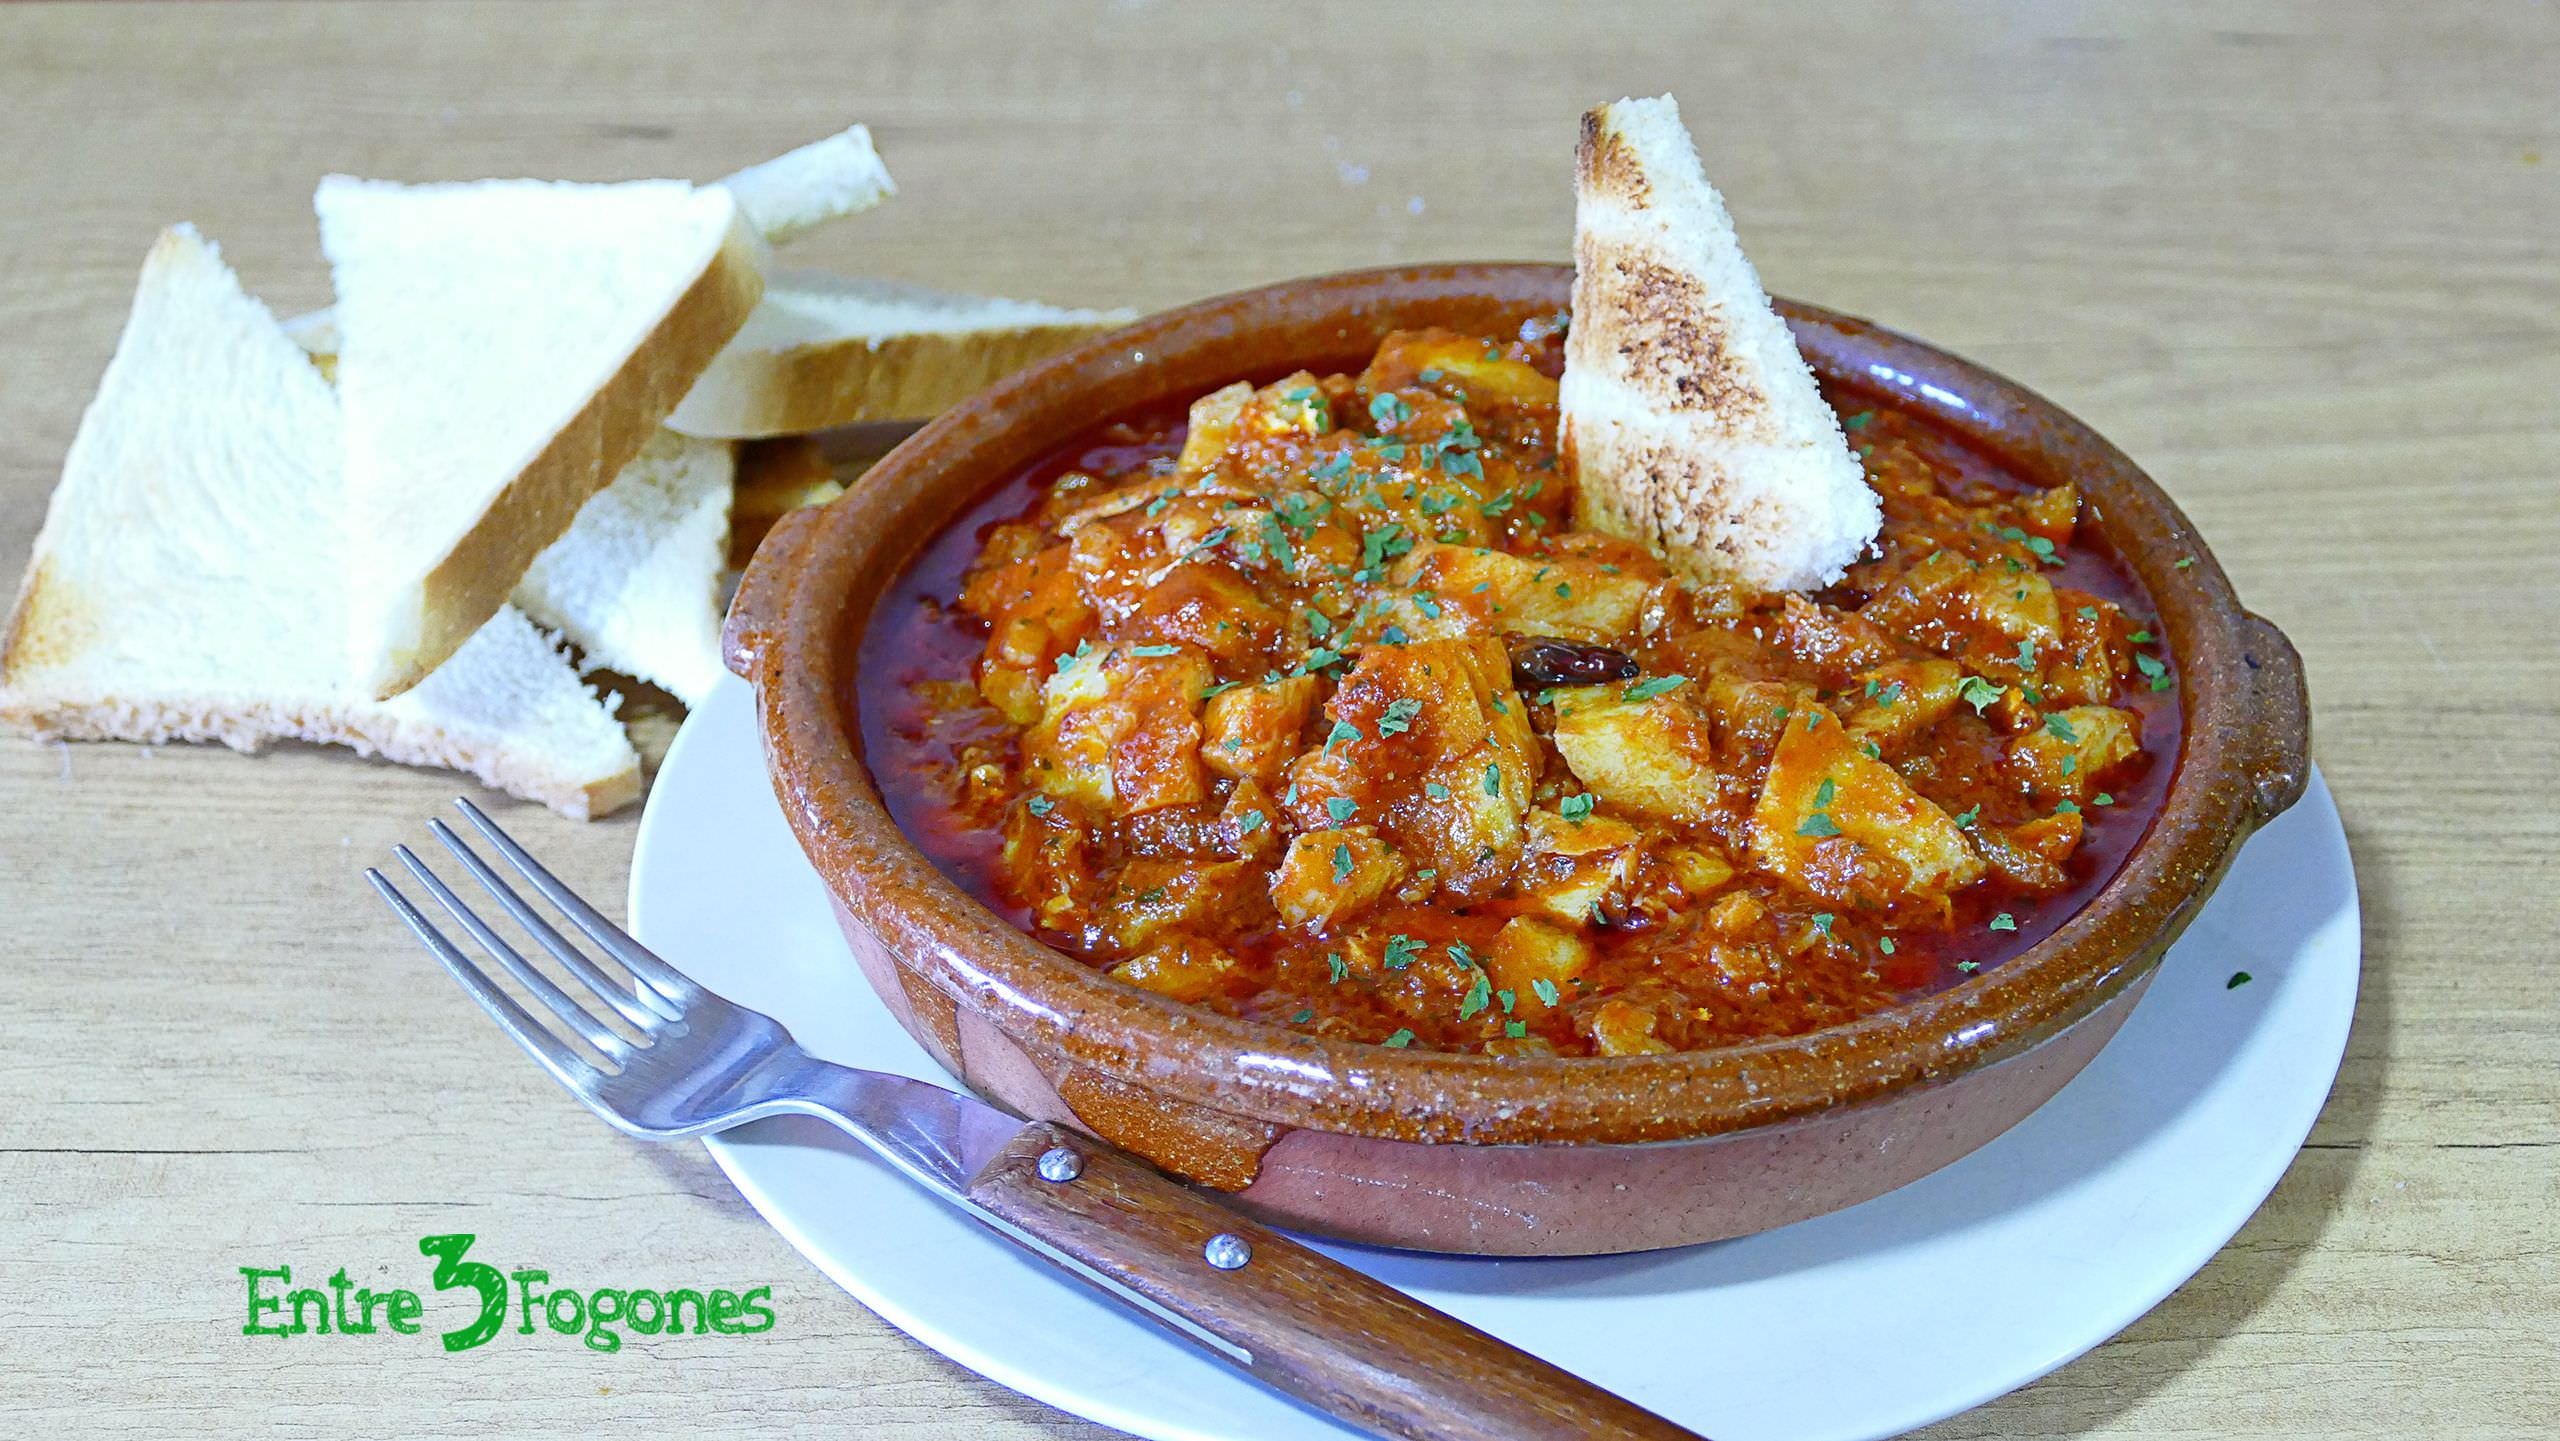 Photo of Bacalao al Ajoarriero con Pimiento Choricero